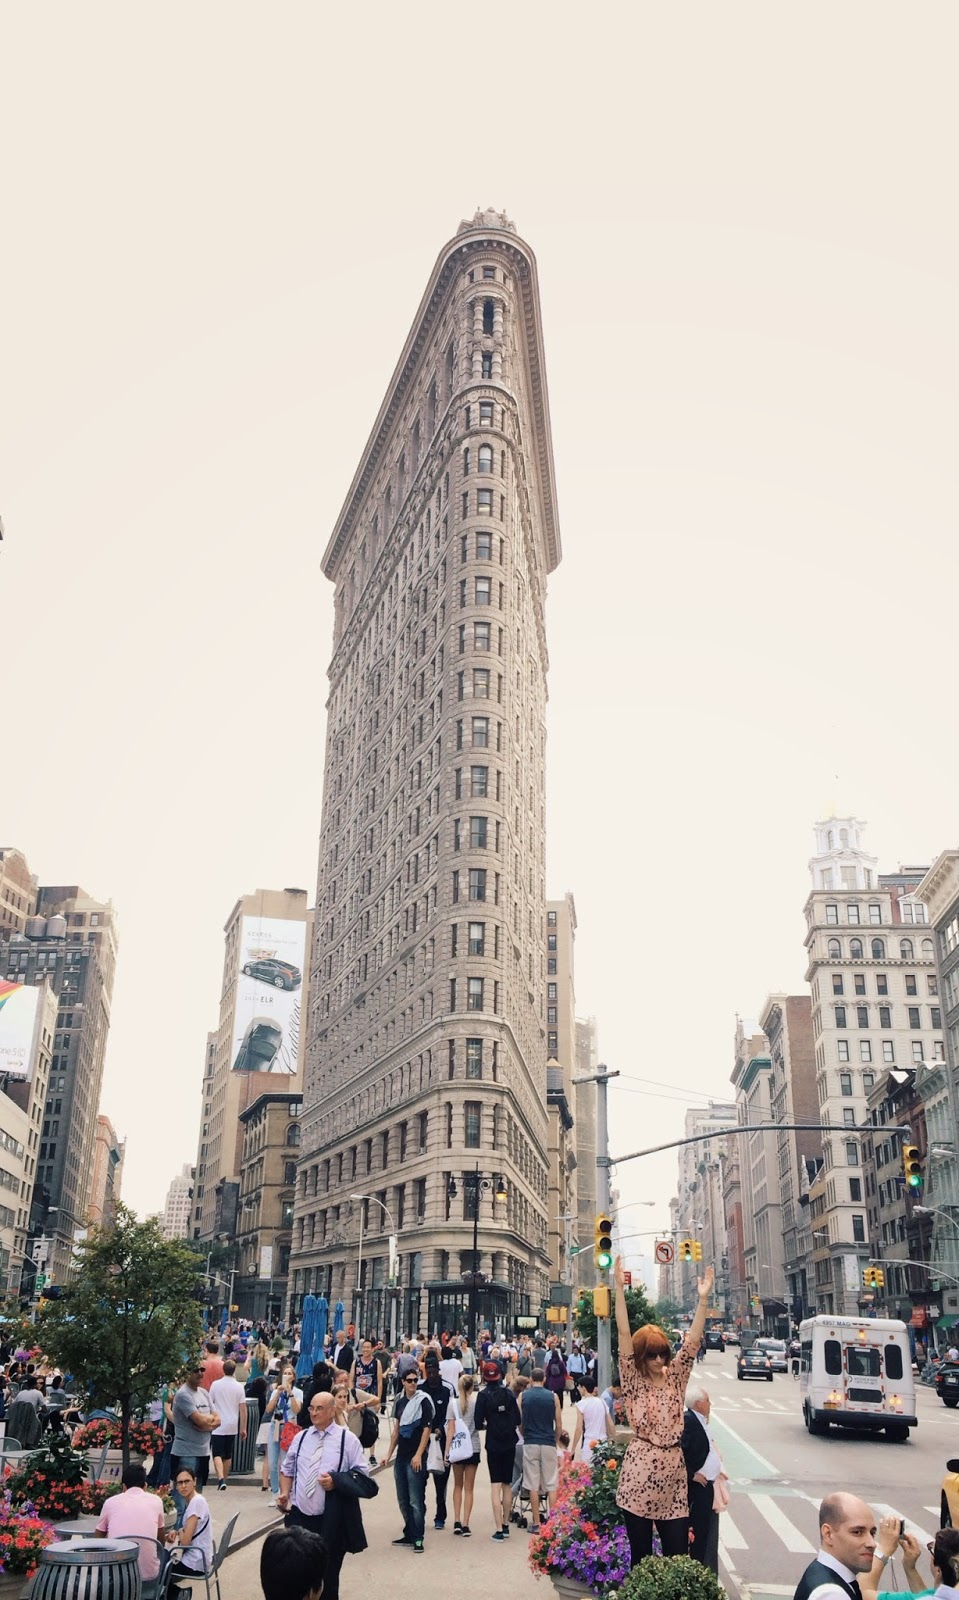 Flatiron District, Shake Shack, Eataly